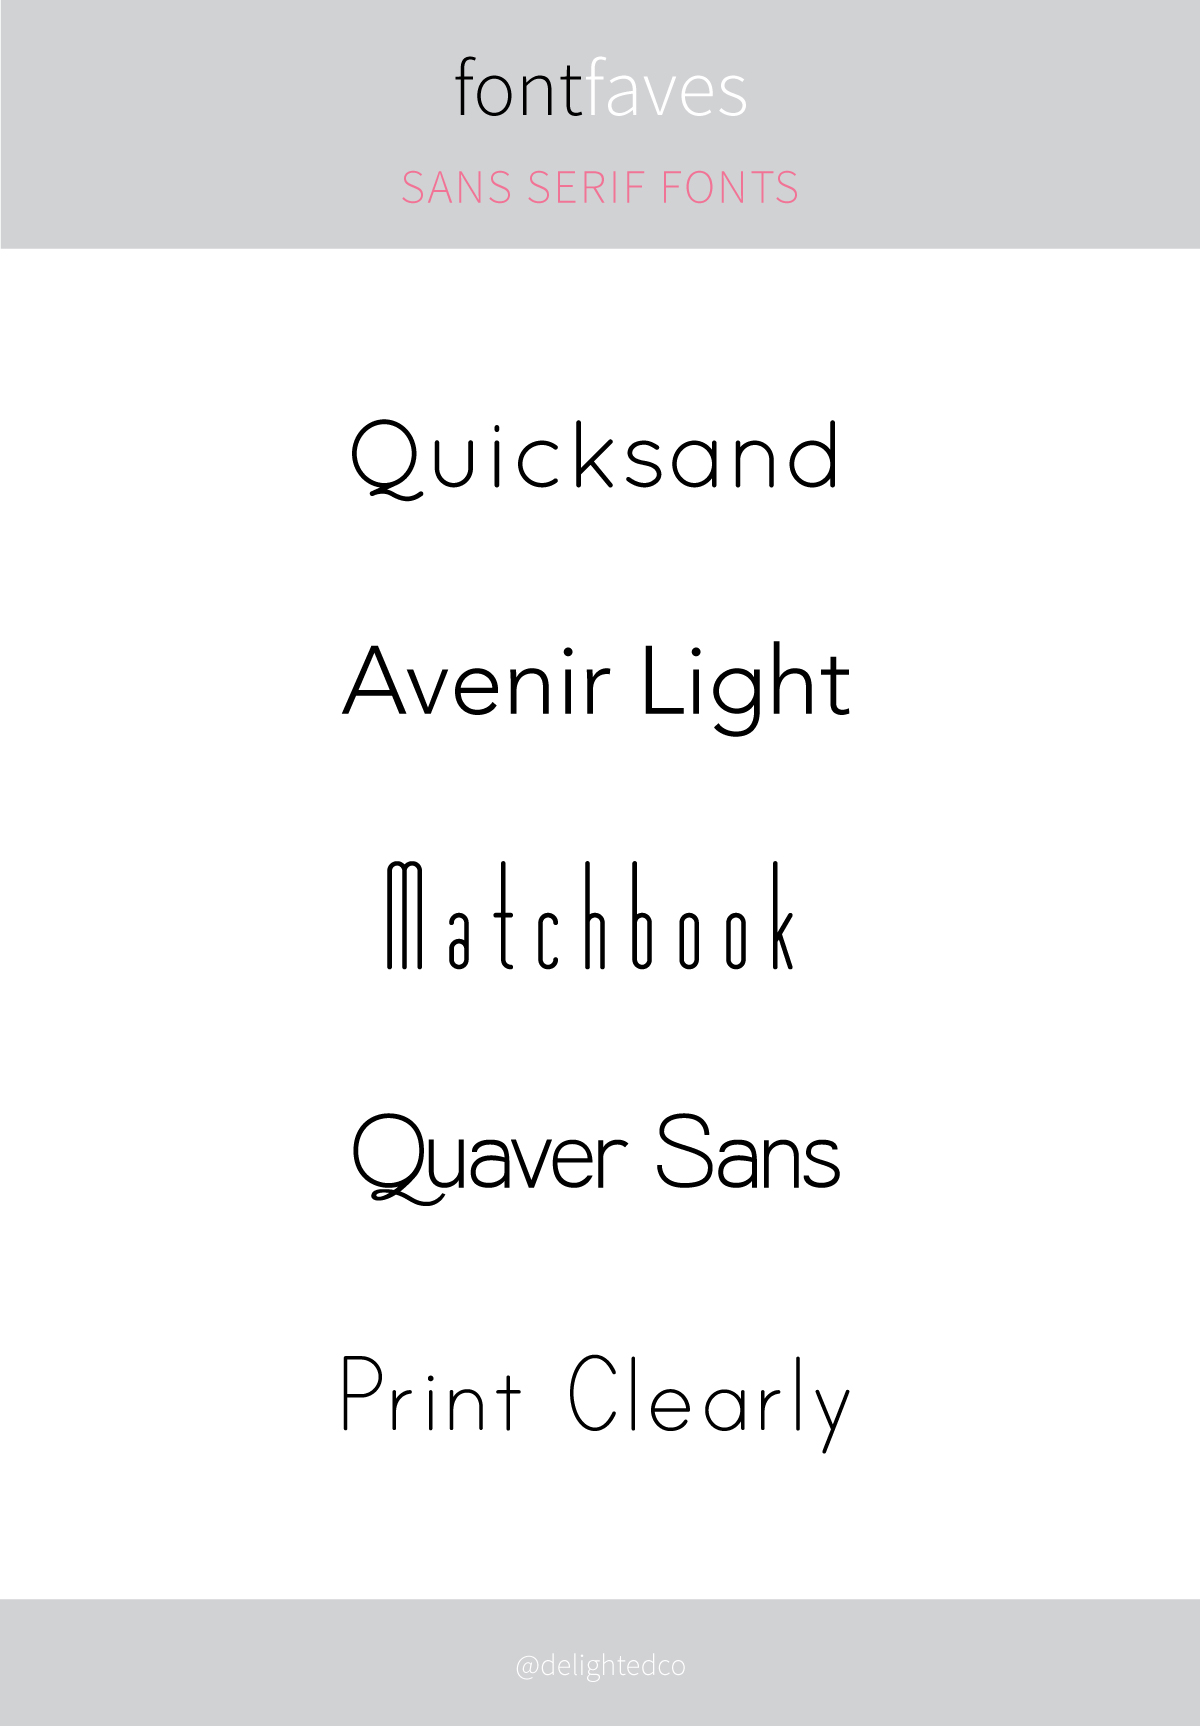 Font Faves: Sans Serif | DelightedCo